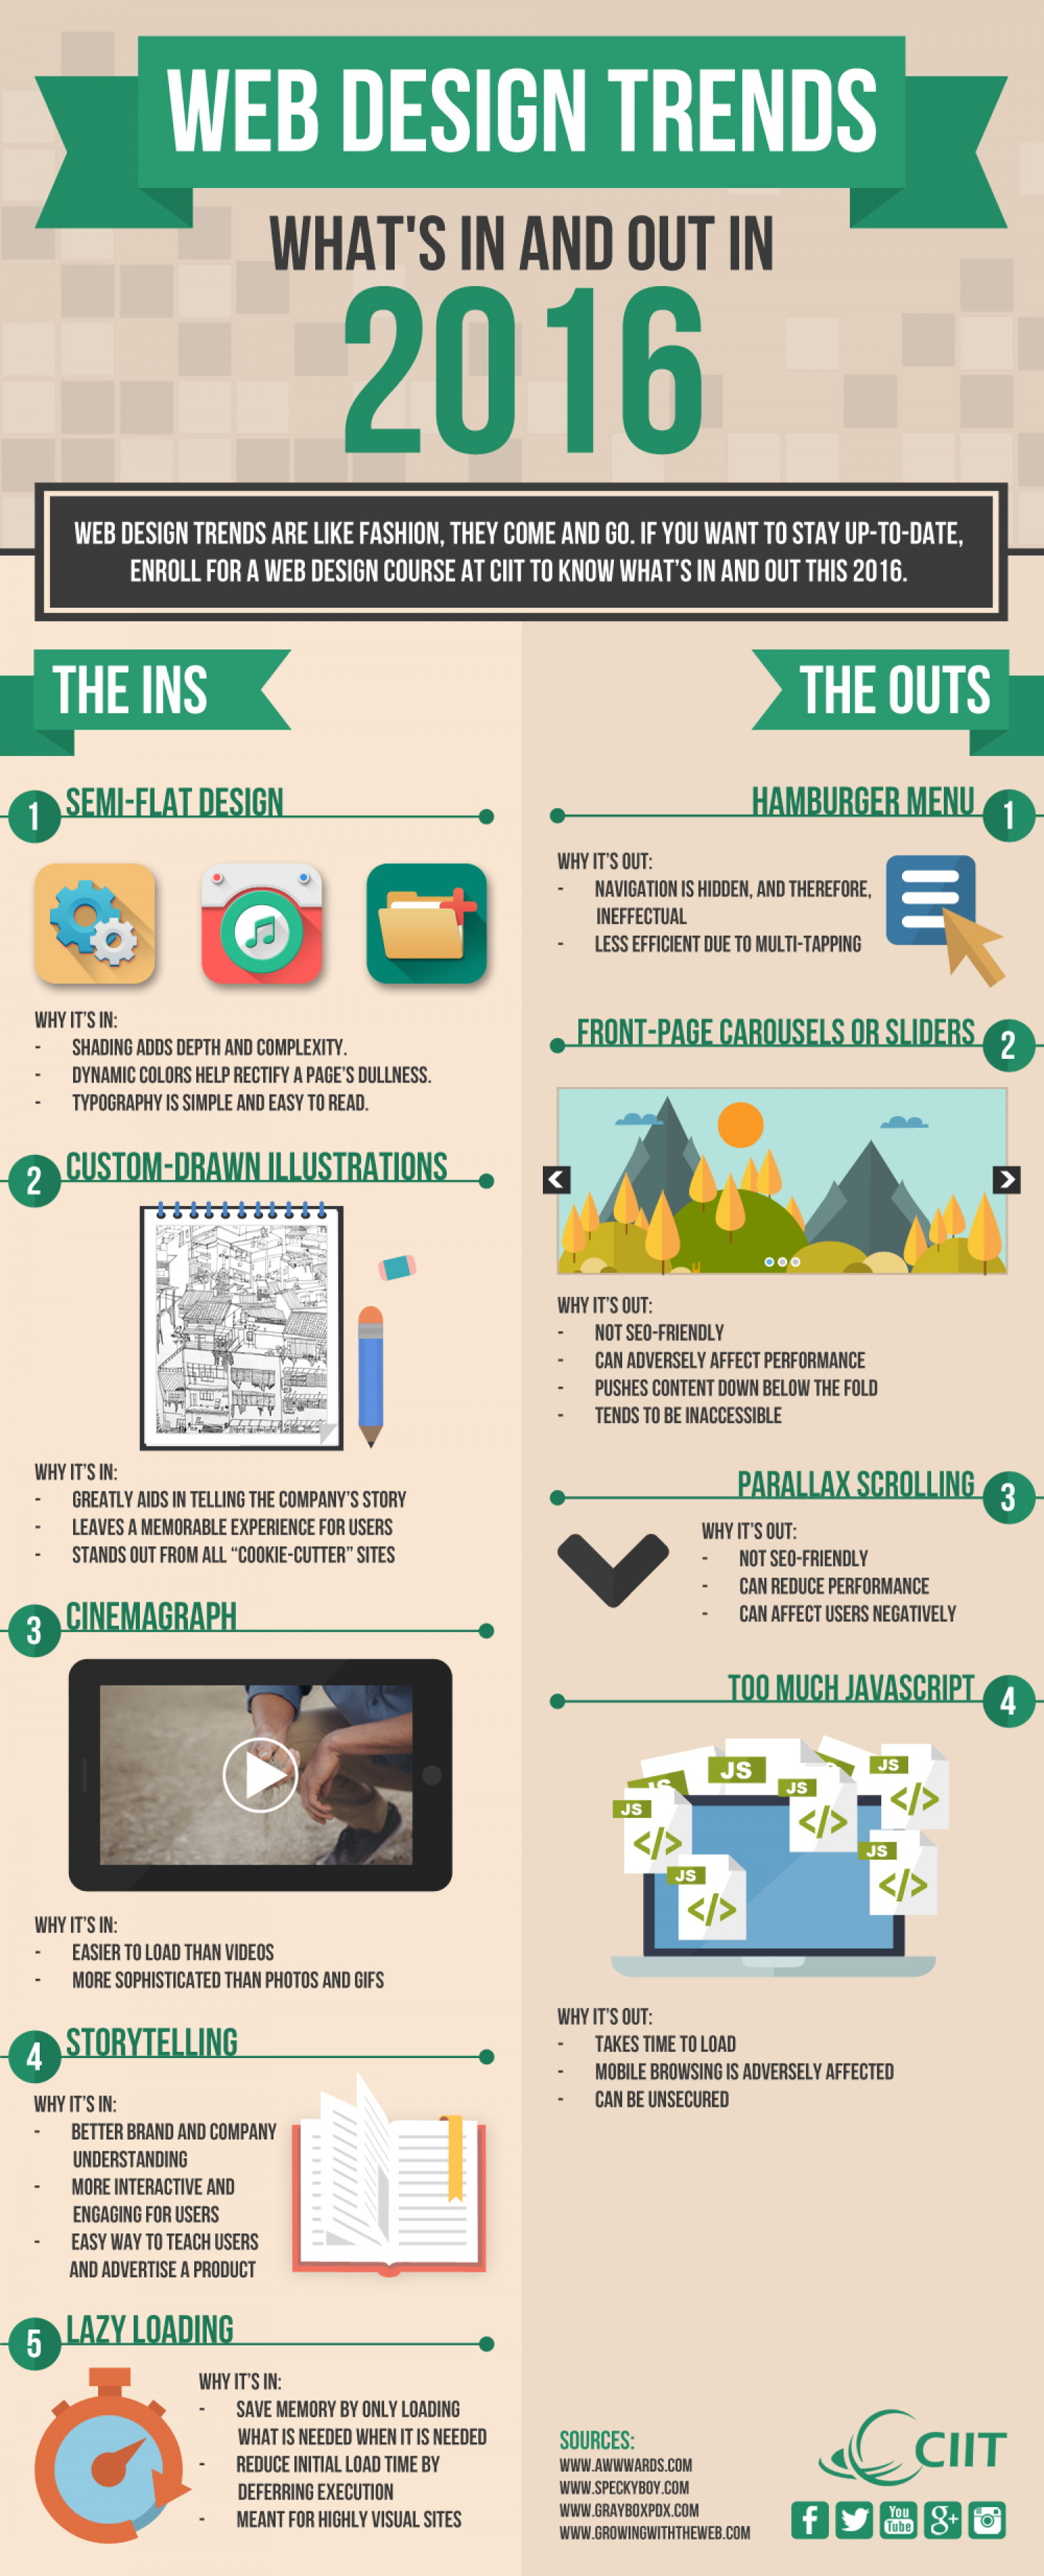 Web design trends to expect this 2016 infographic Go to the website